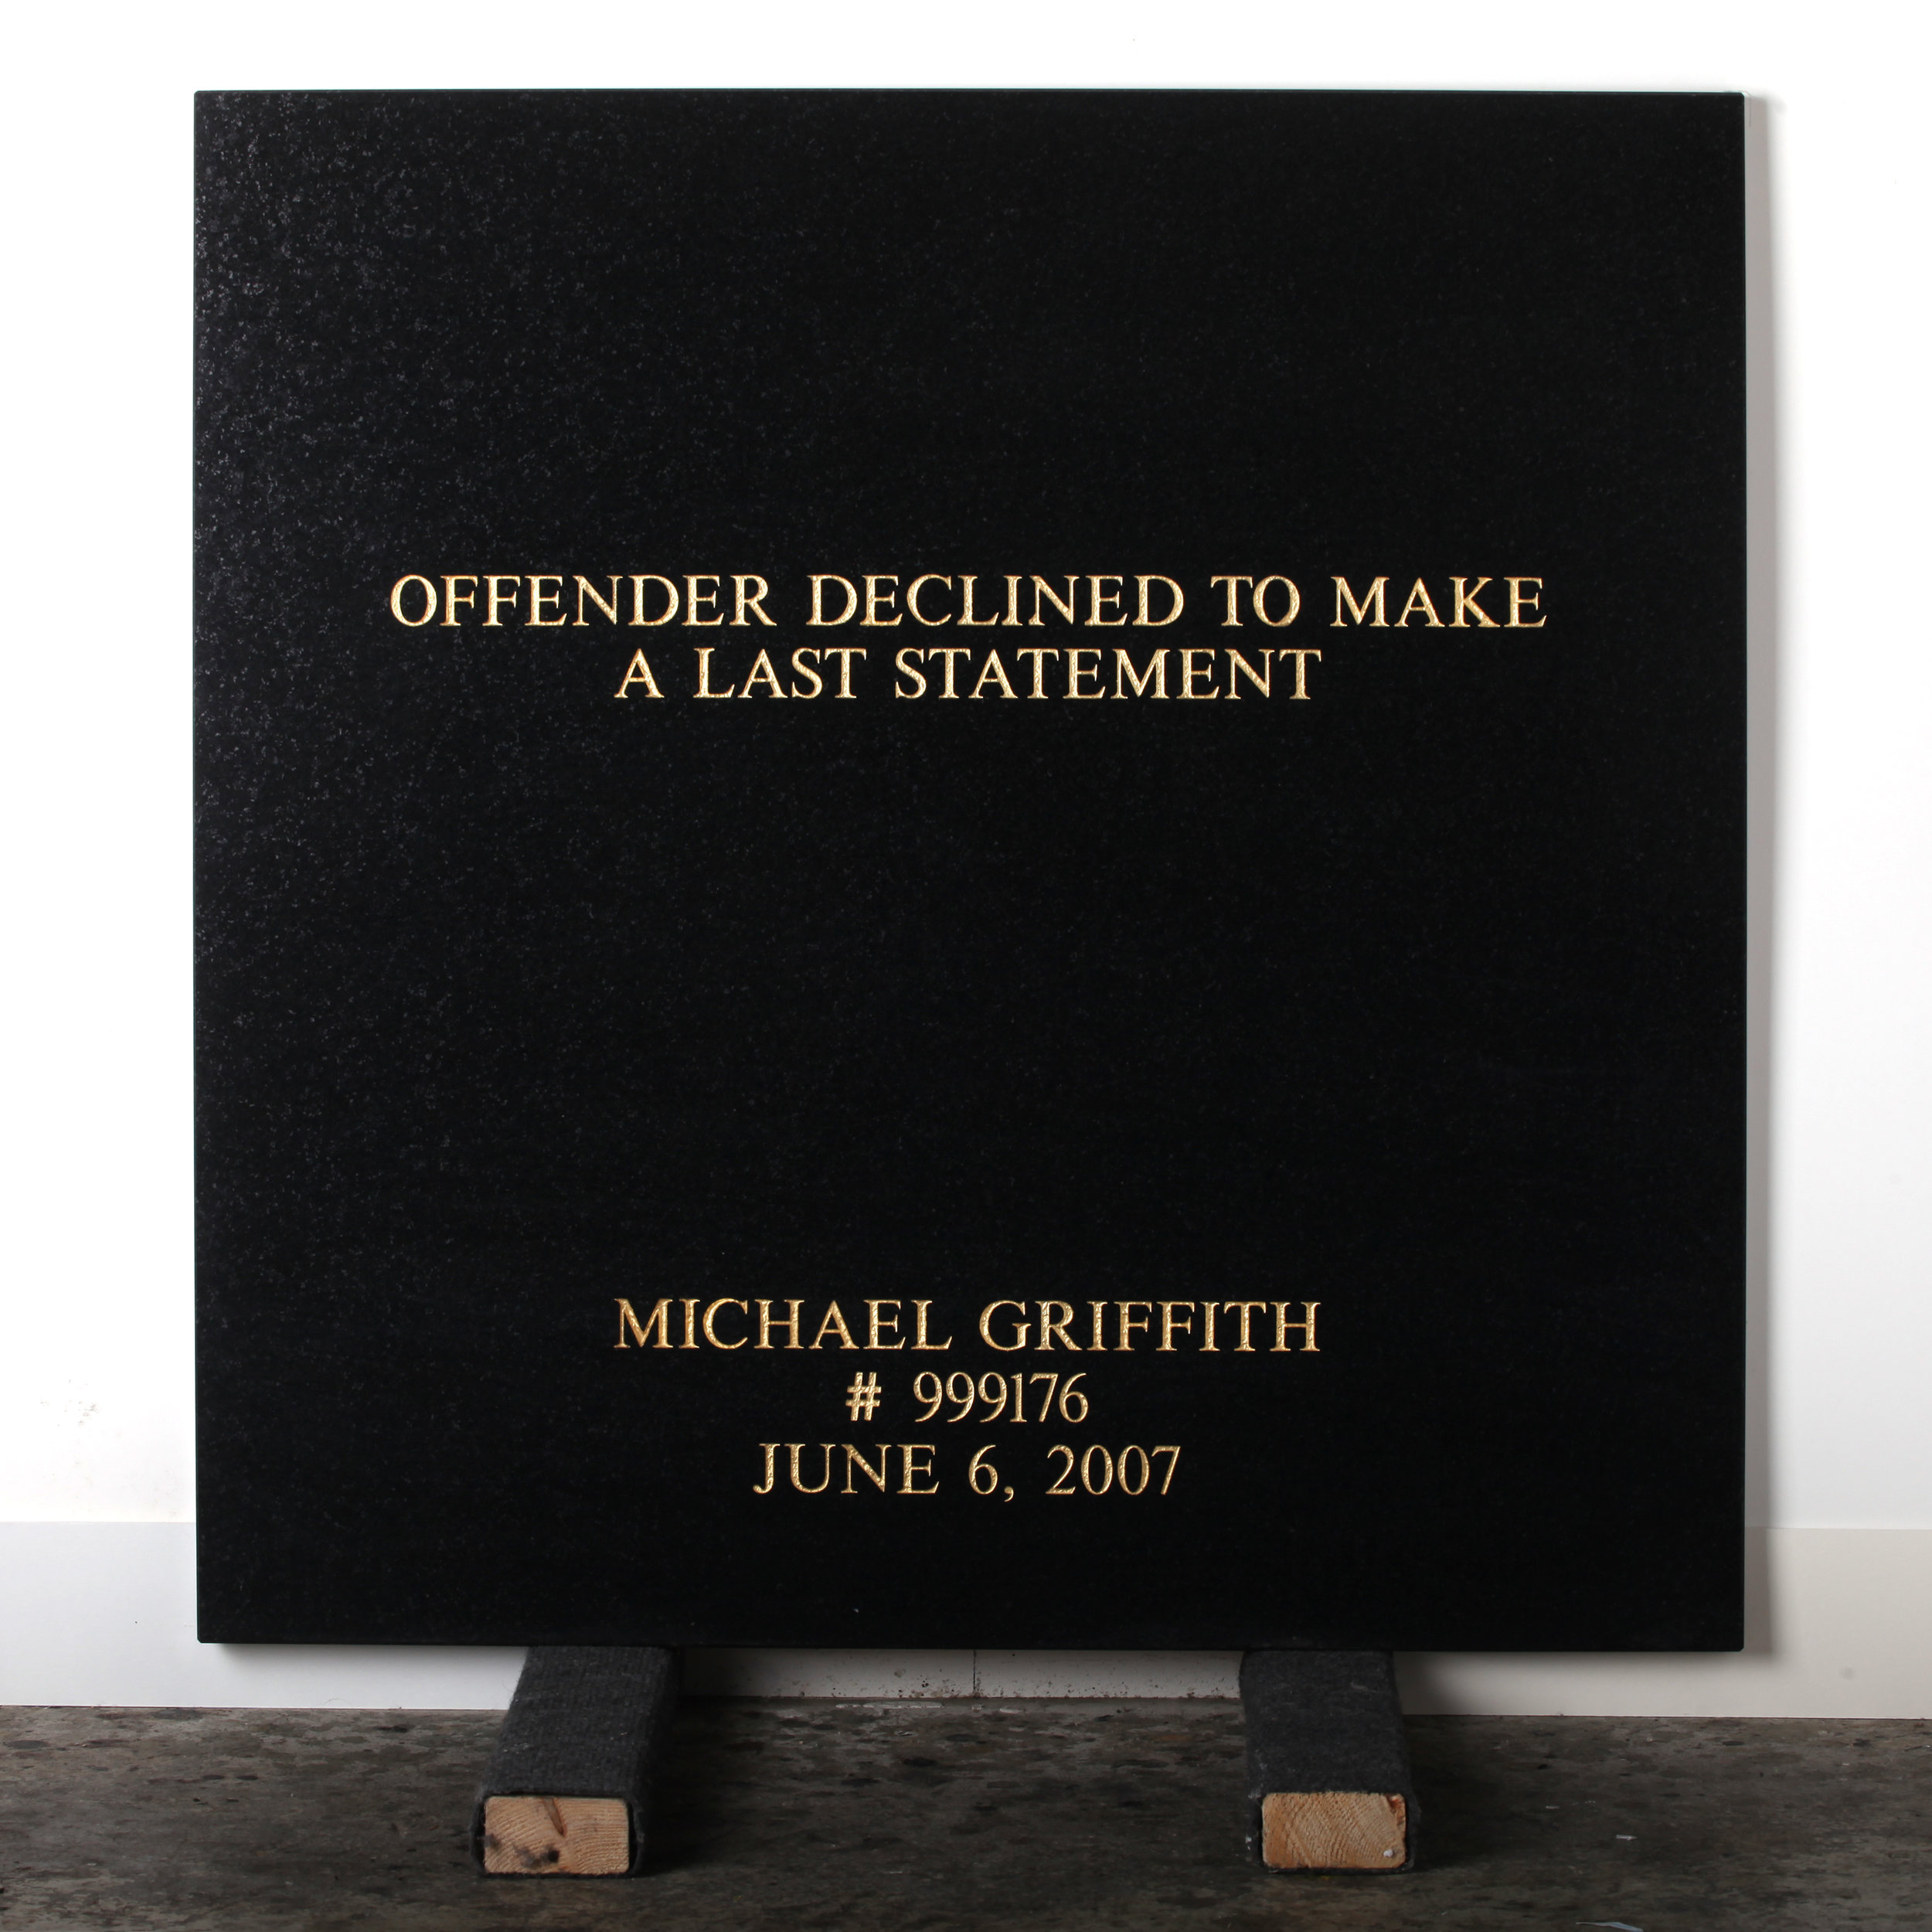 Last Statement /  Plate  V. # 999176 Michael Griffith  Marble / Sandblasted Letters / 24 Carat Gold Leaf 80 x 80 x 3 cm / 31 x 31 x 1,5 in Collection of Per Fronth